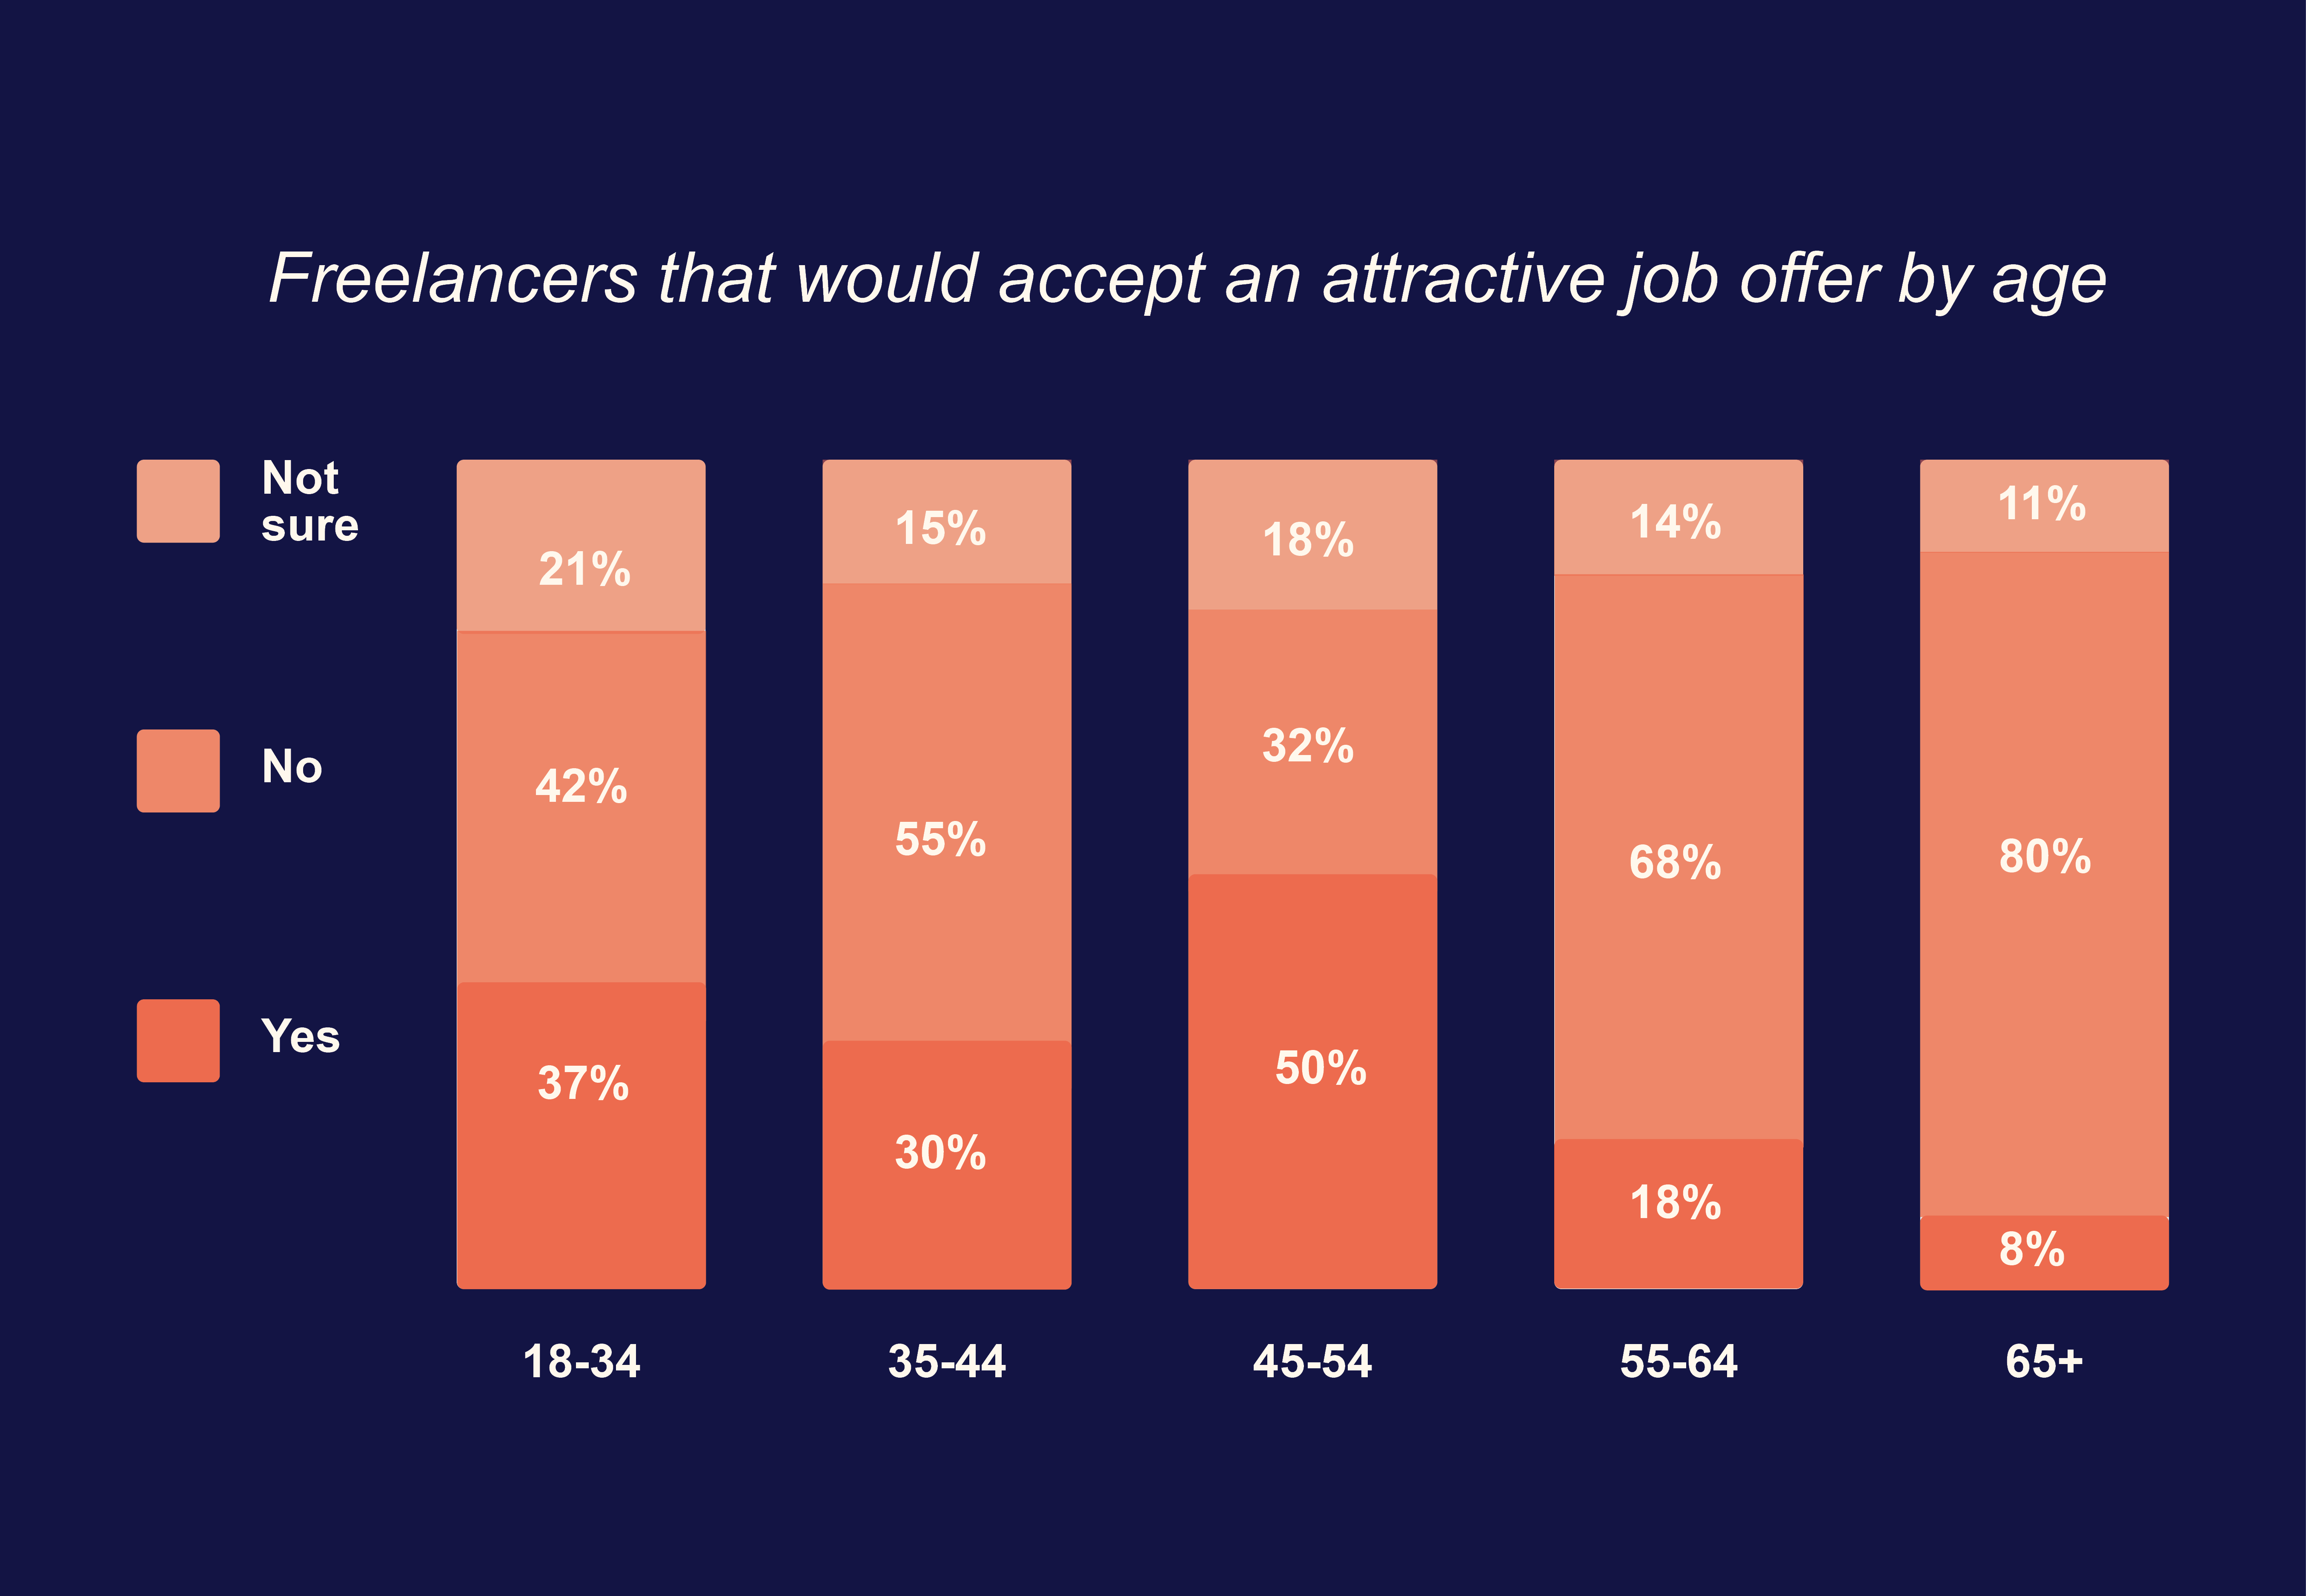 Freelancers that would take an attractive job offer by age